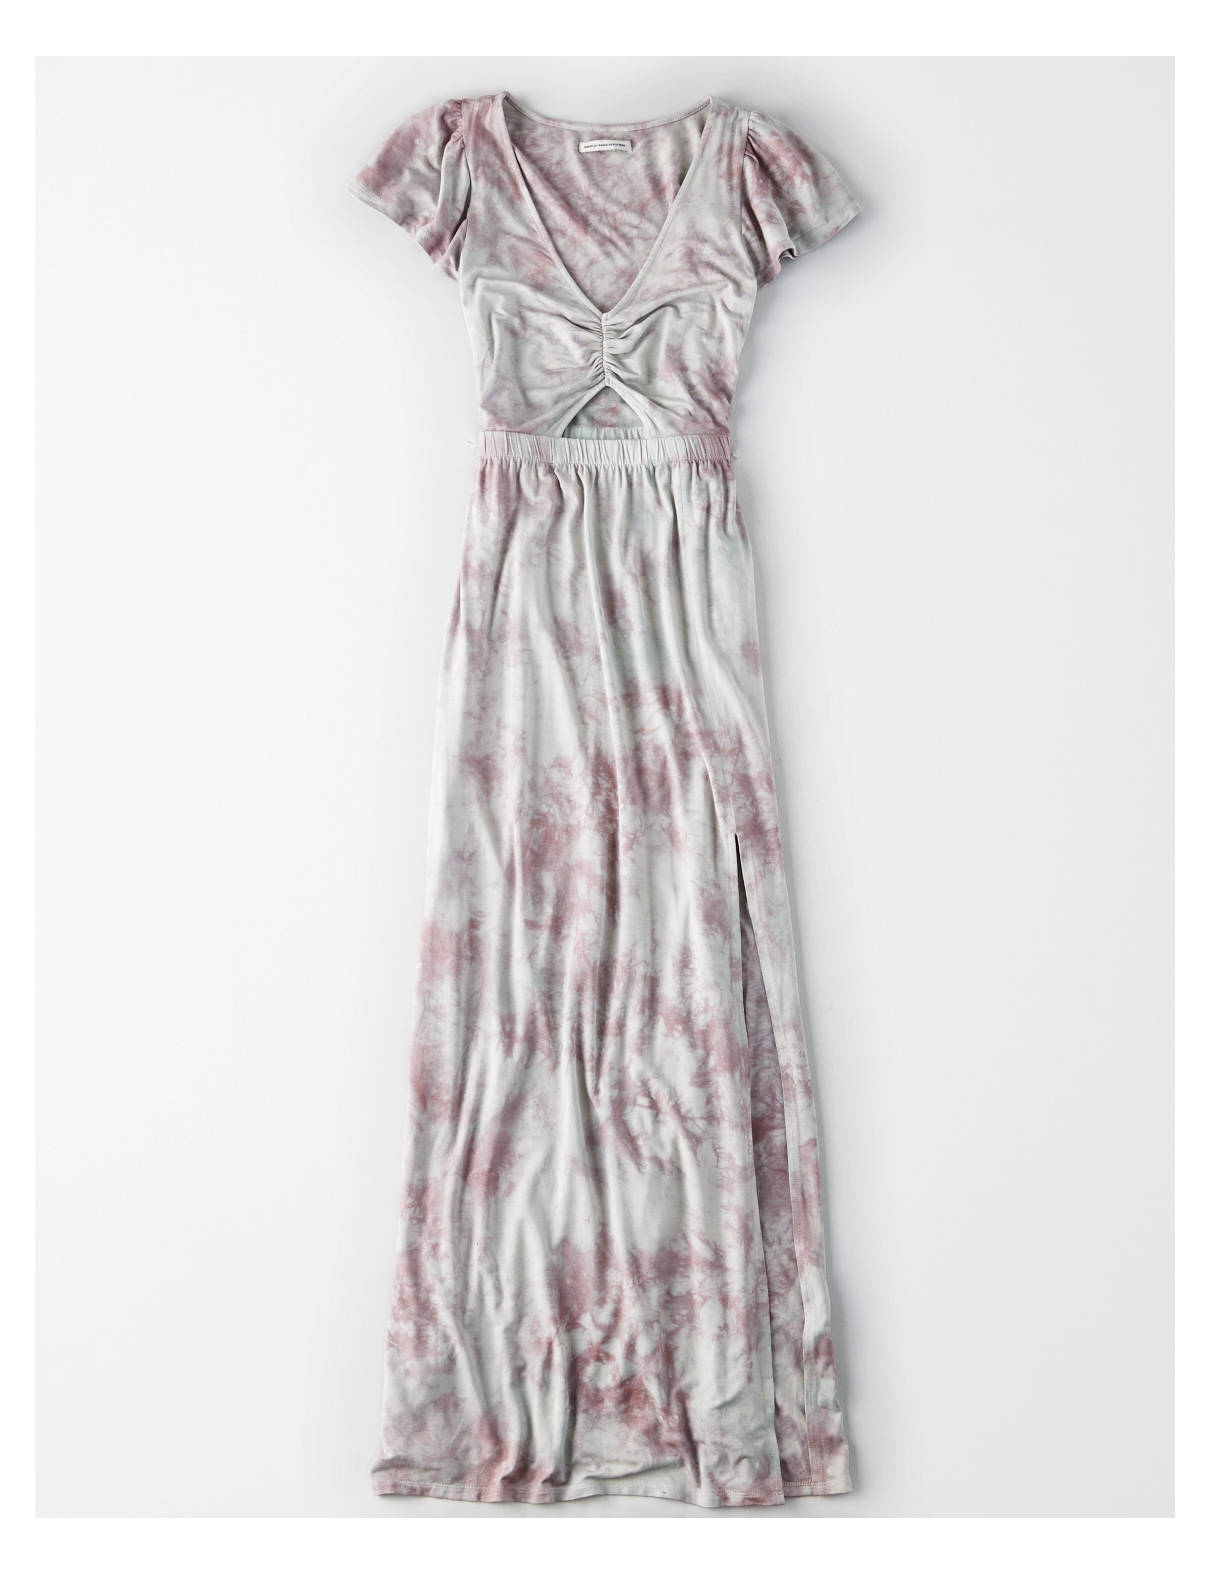 dresses for women american eagle outfitters